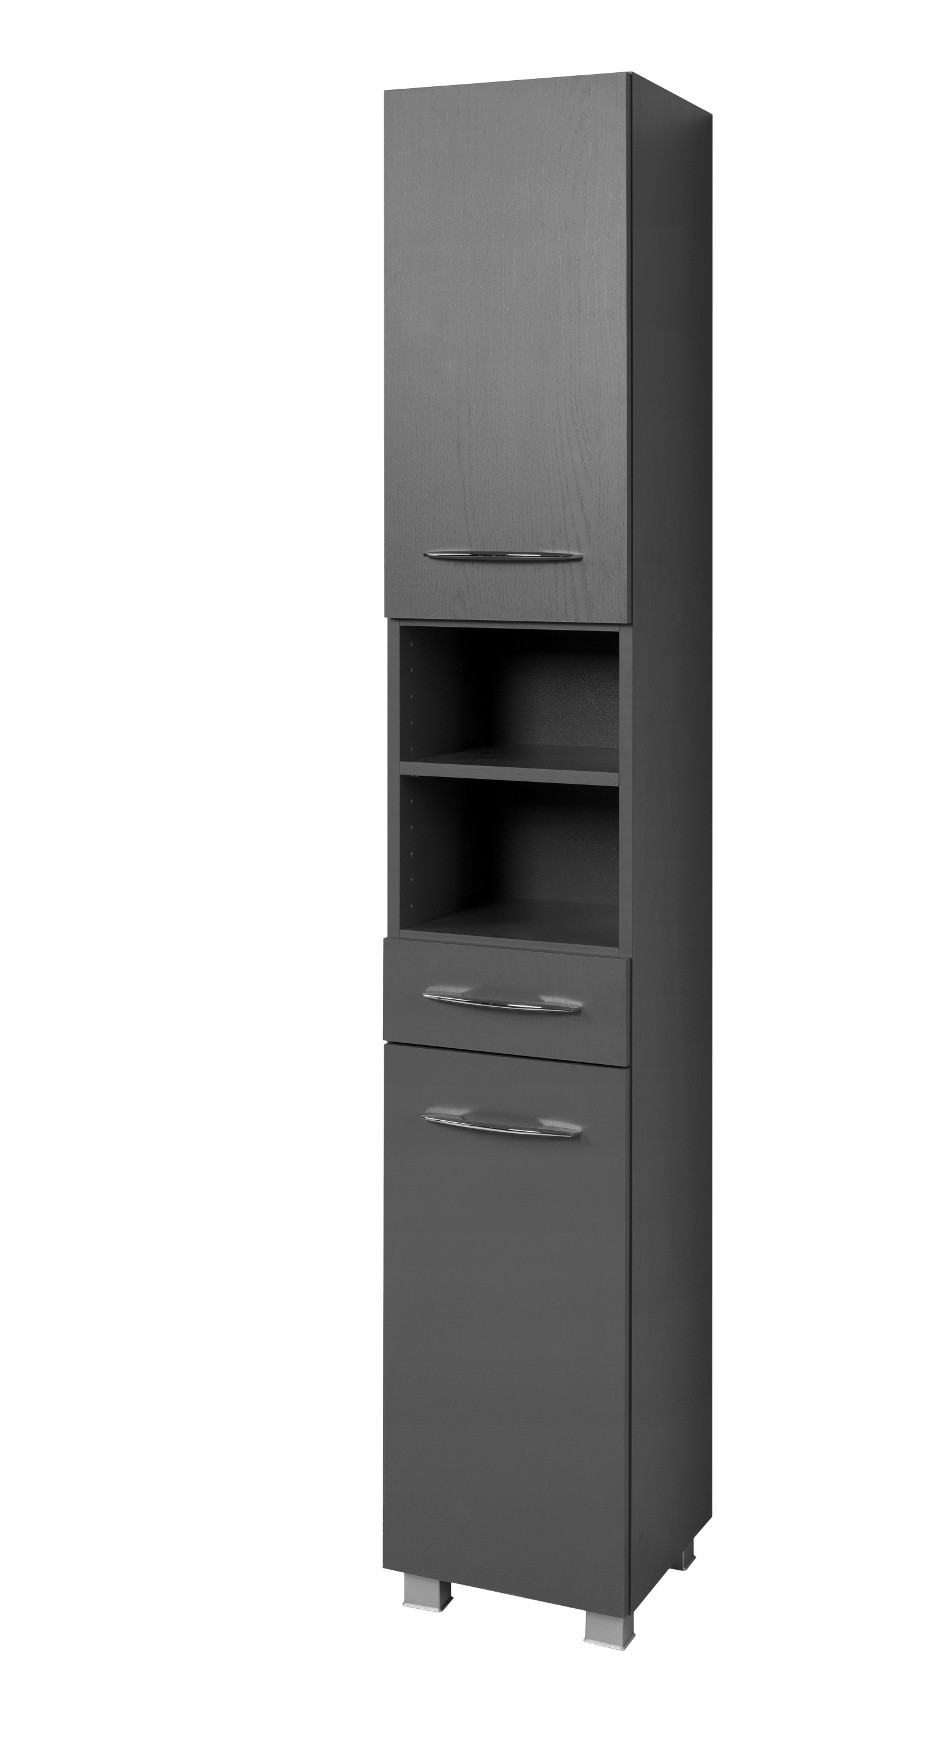 bad hochschrank portofino 2 t rig 1 schubkasten 30 cm breit graphitgrau bad portofino. Black Bedroom Furniture Sets. Home Design Ideas